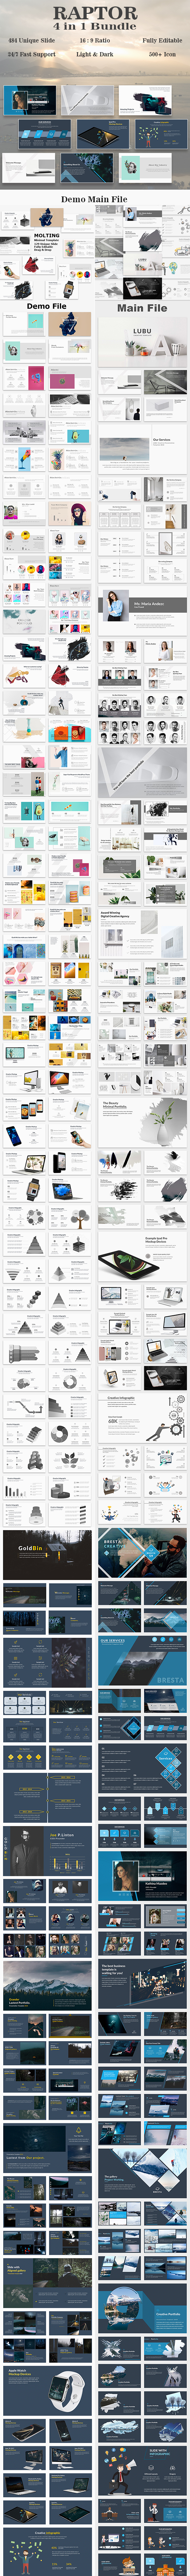 Raptor Bundle 4 in 1 Minimal PowerPoint Template - Creative PowerPoint Templates